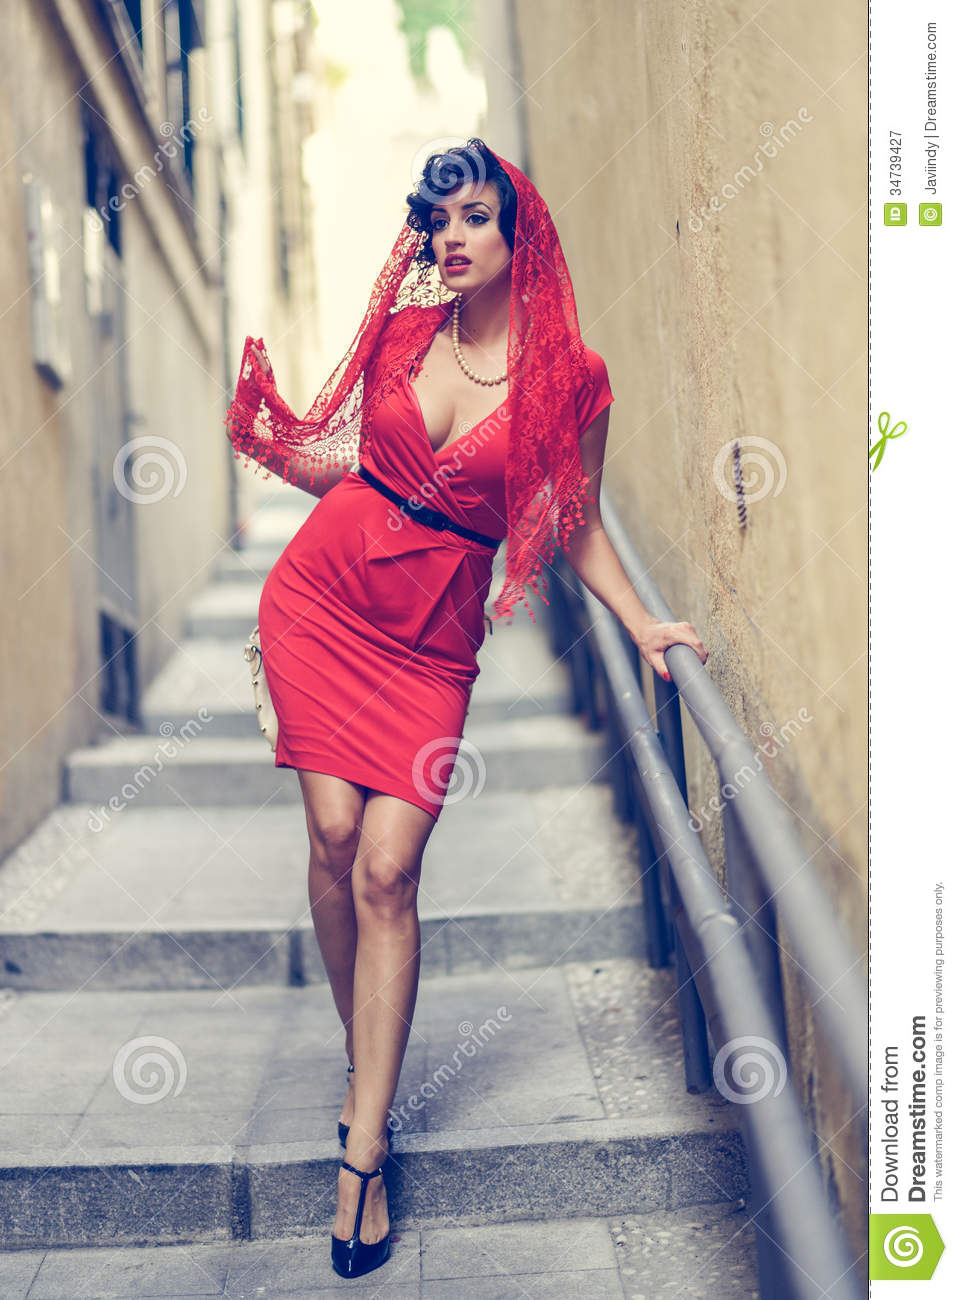 Beautiful woman in urban background vintage style royalty free stock photogr - Vintage style images ...